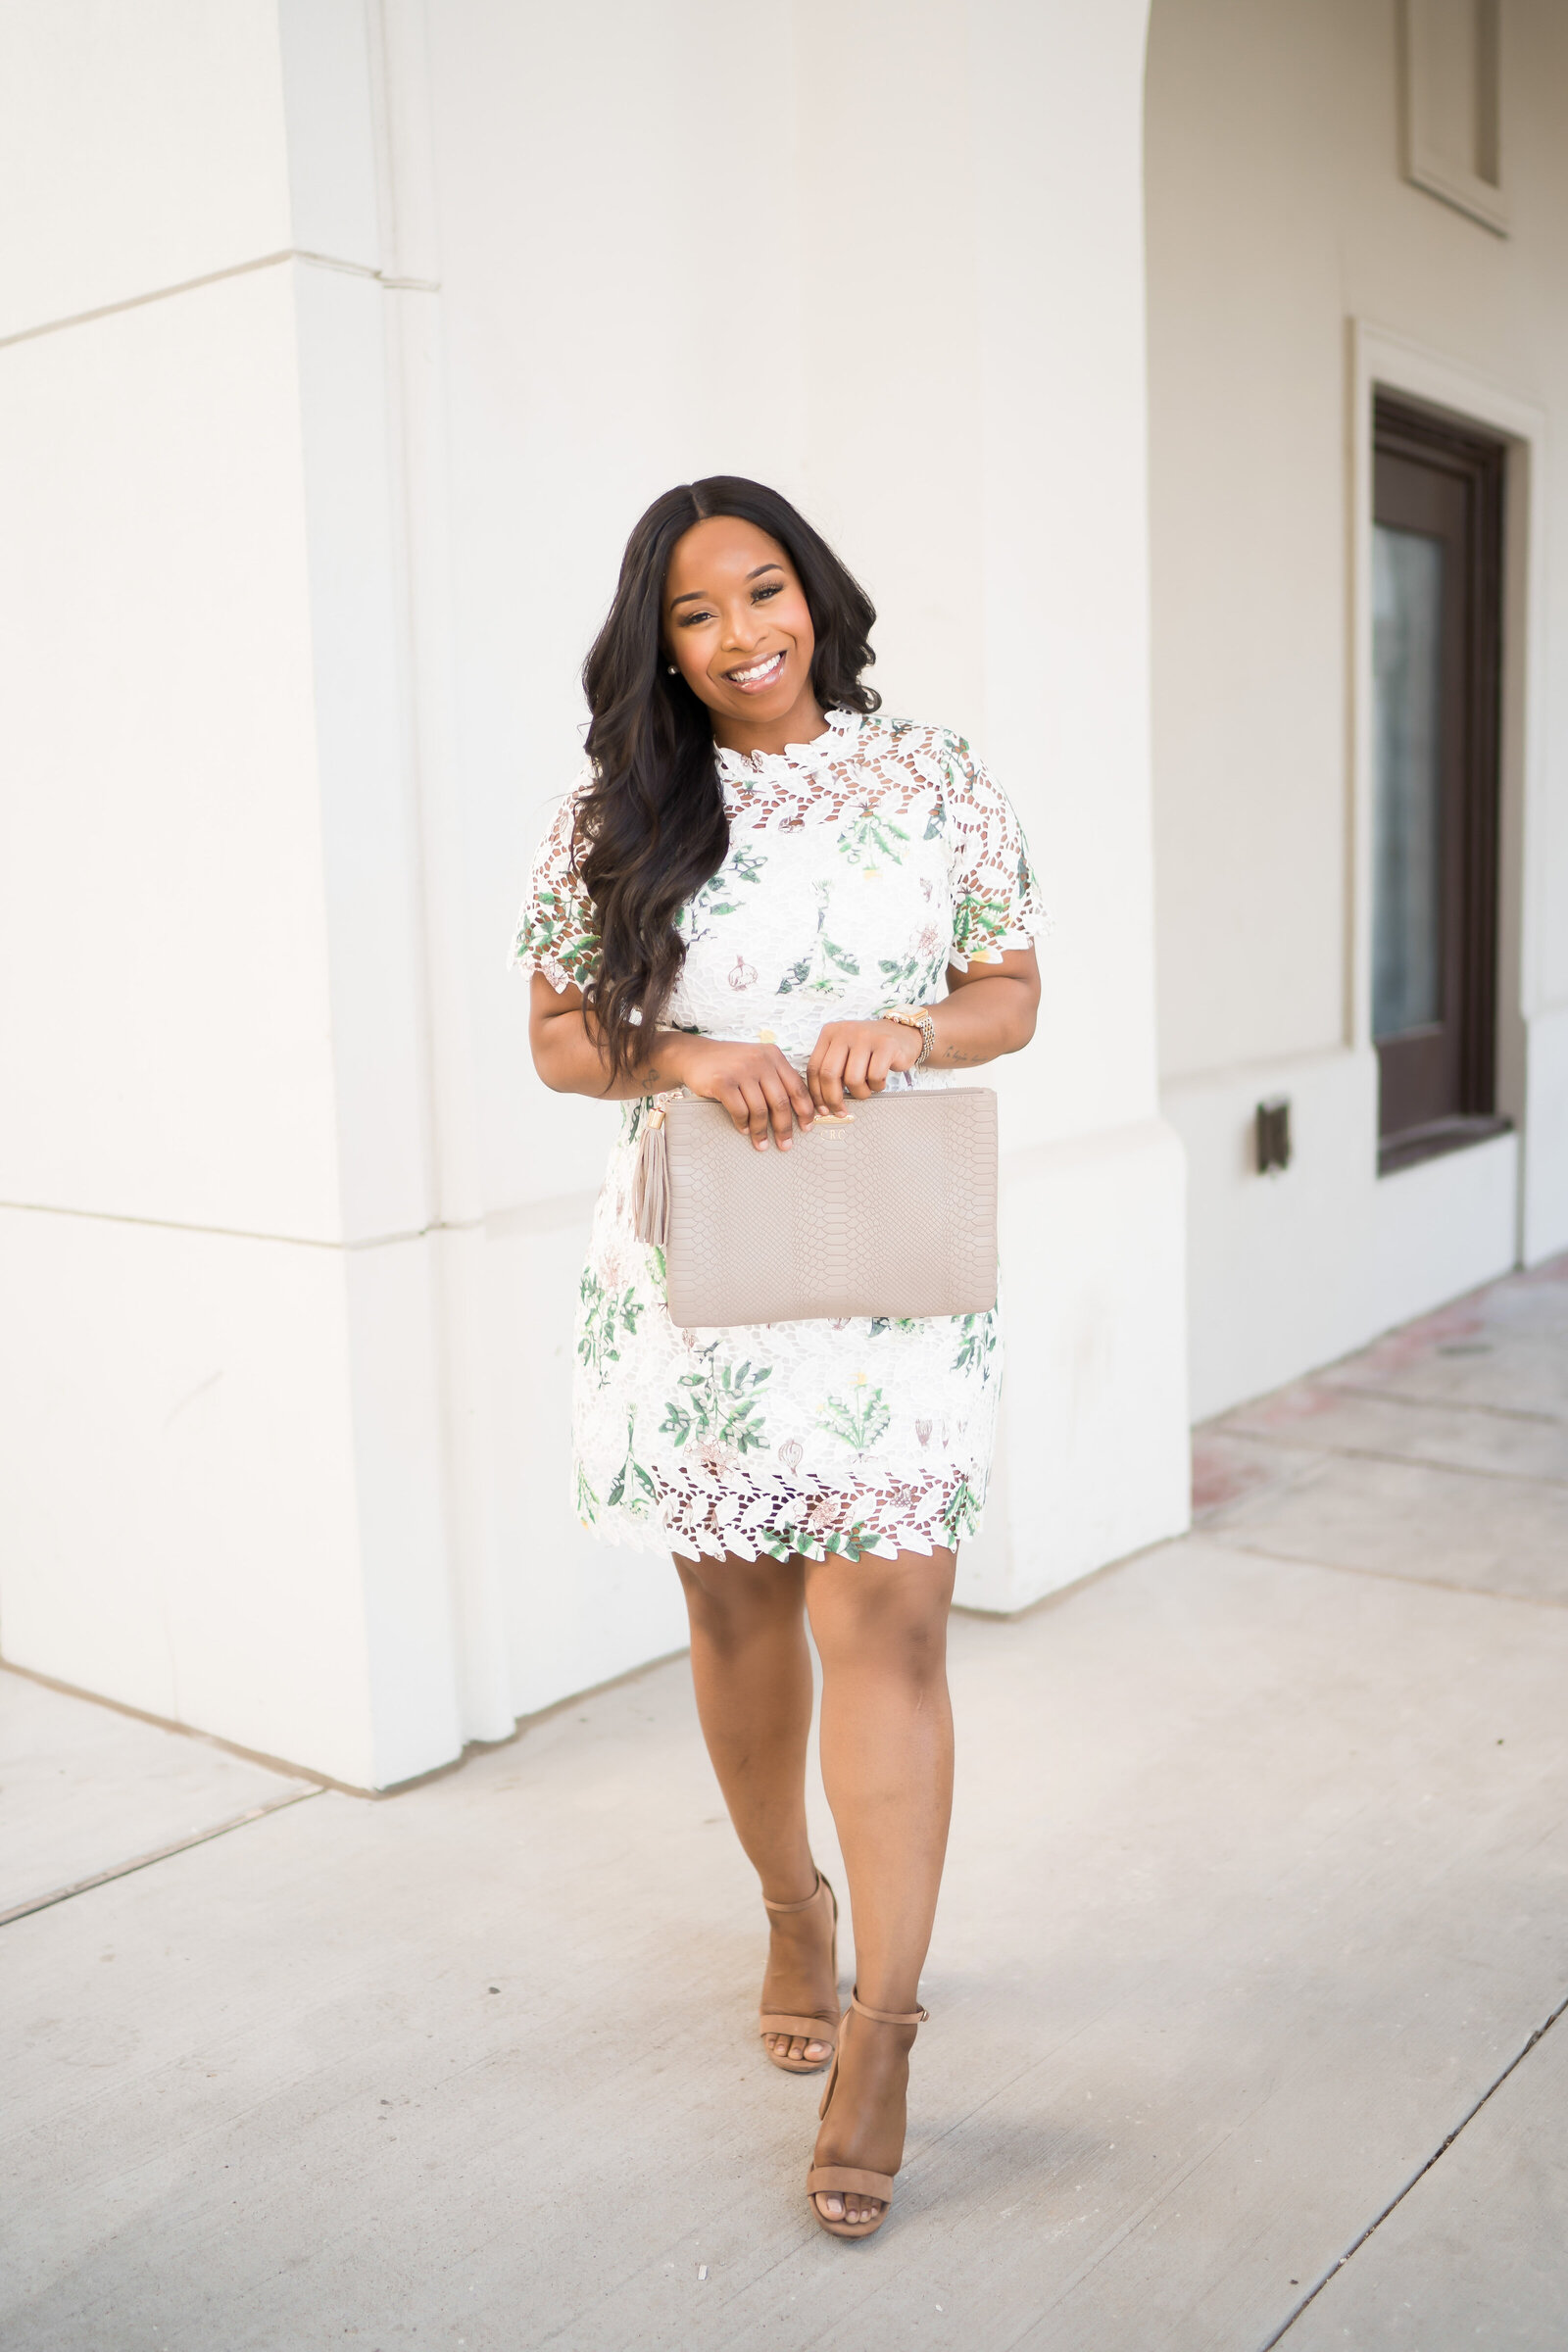 Carmen Renee - Houston Texas Lifestyle Beauty Style Decor Motherhood Blogger - 9